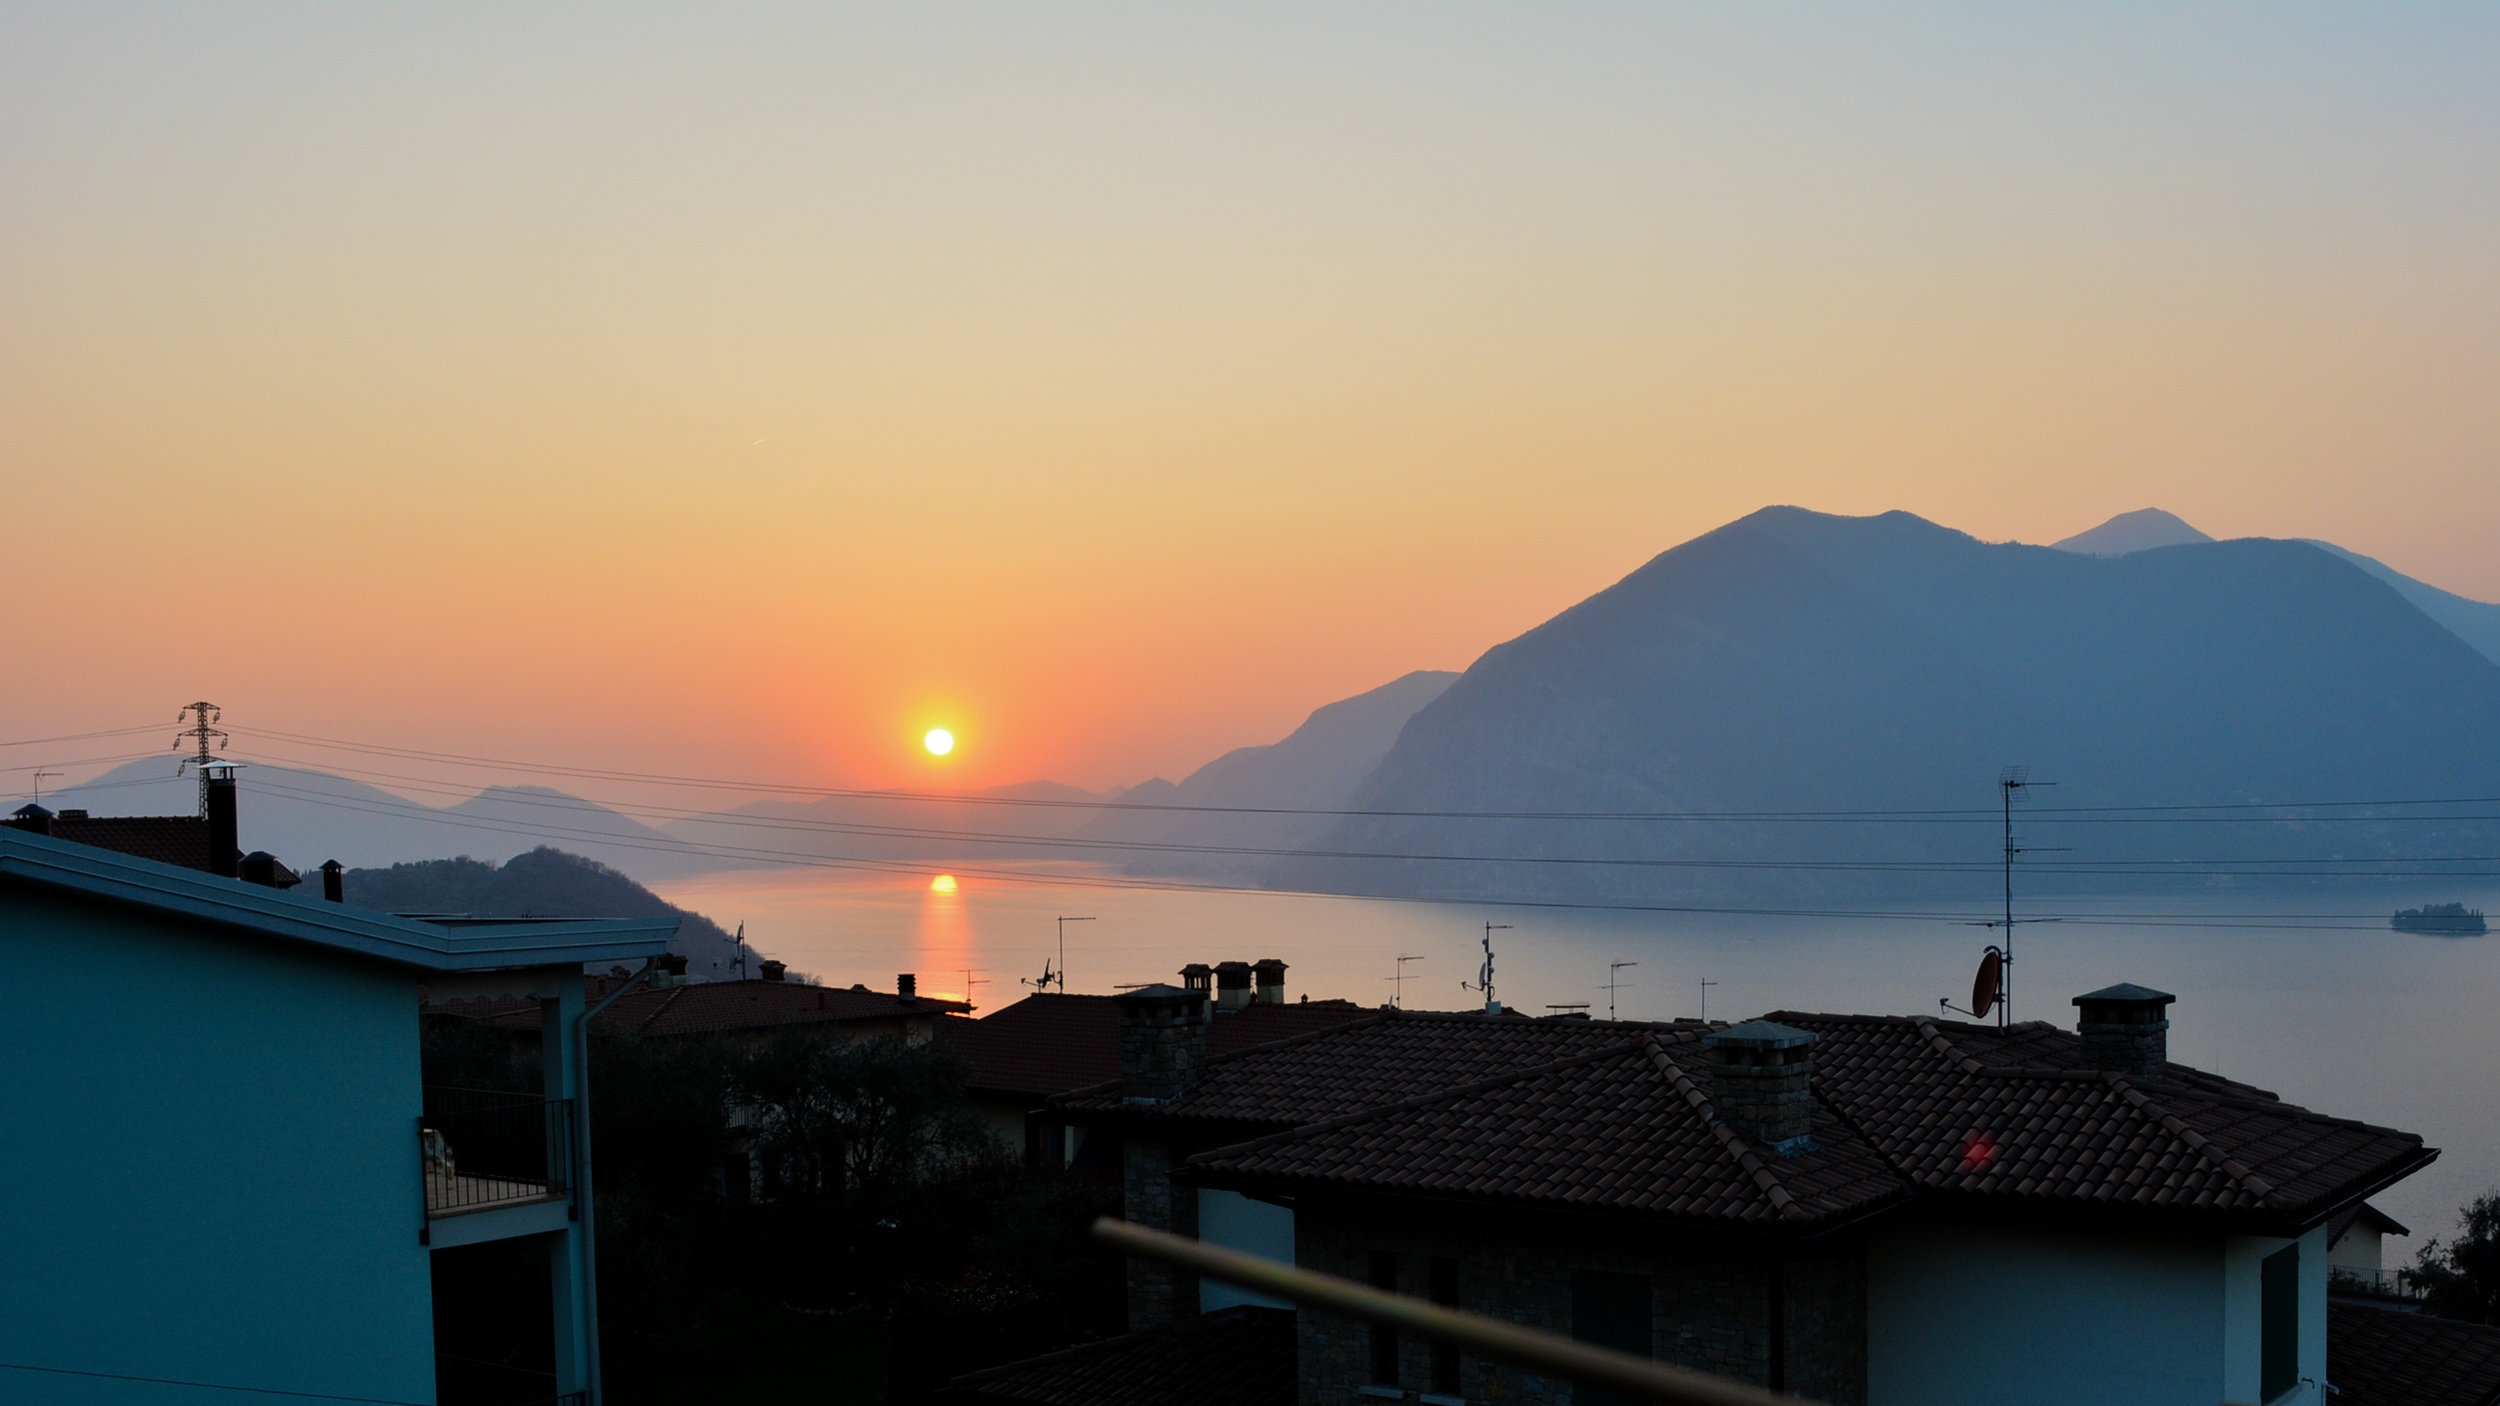 Sunset over Iseo.jpg